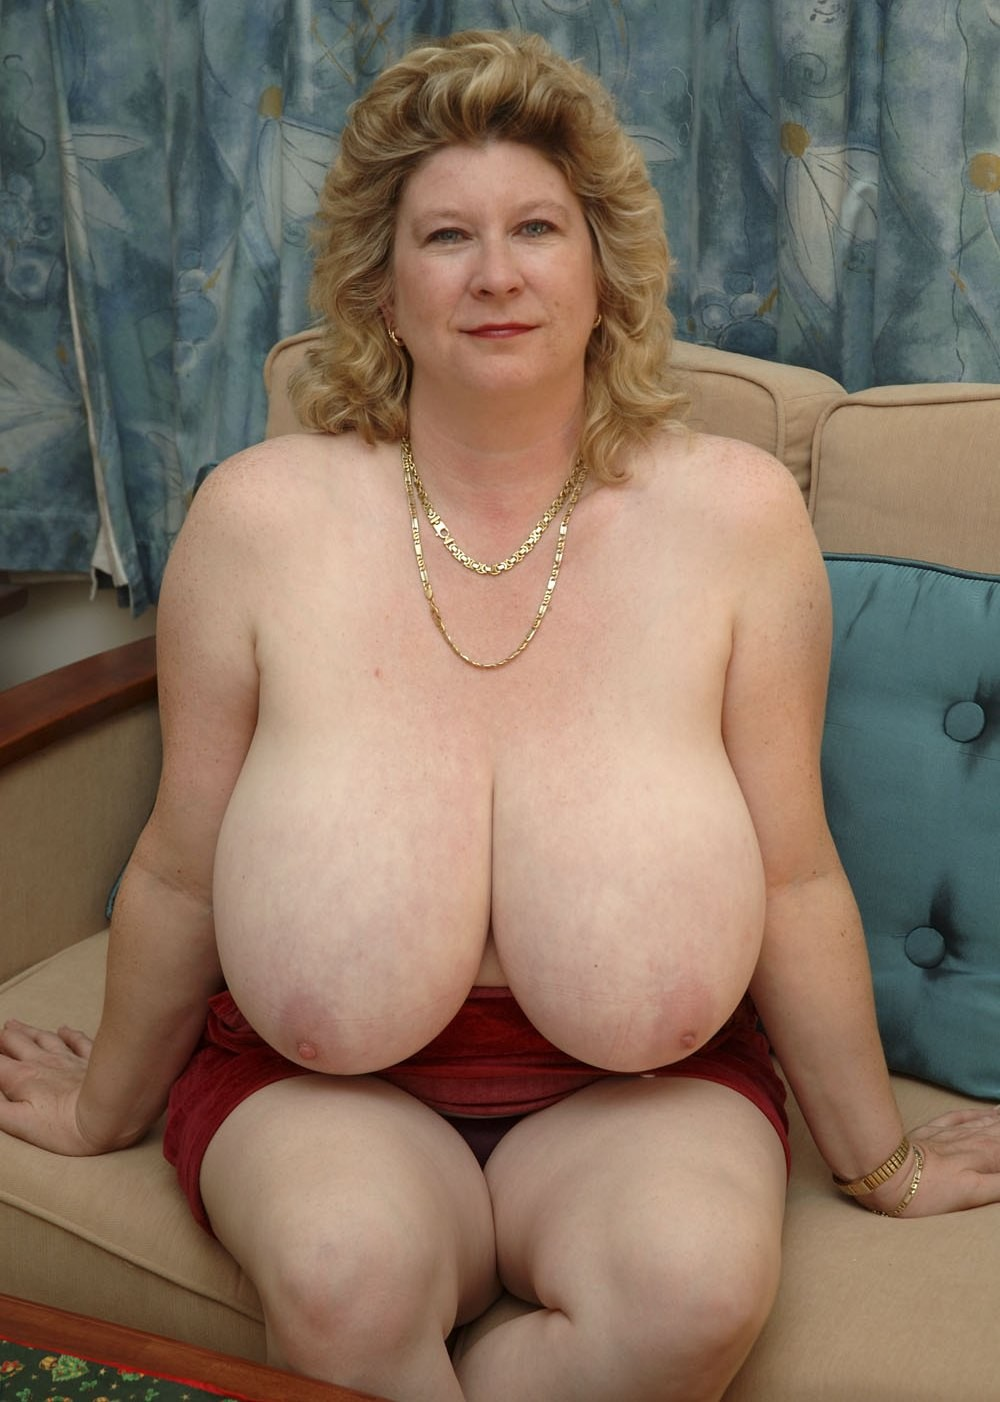 Not happens)))) big milf jugs